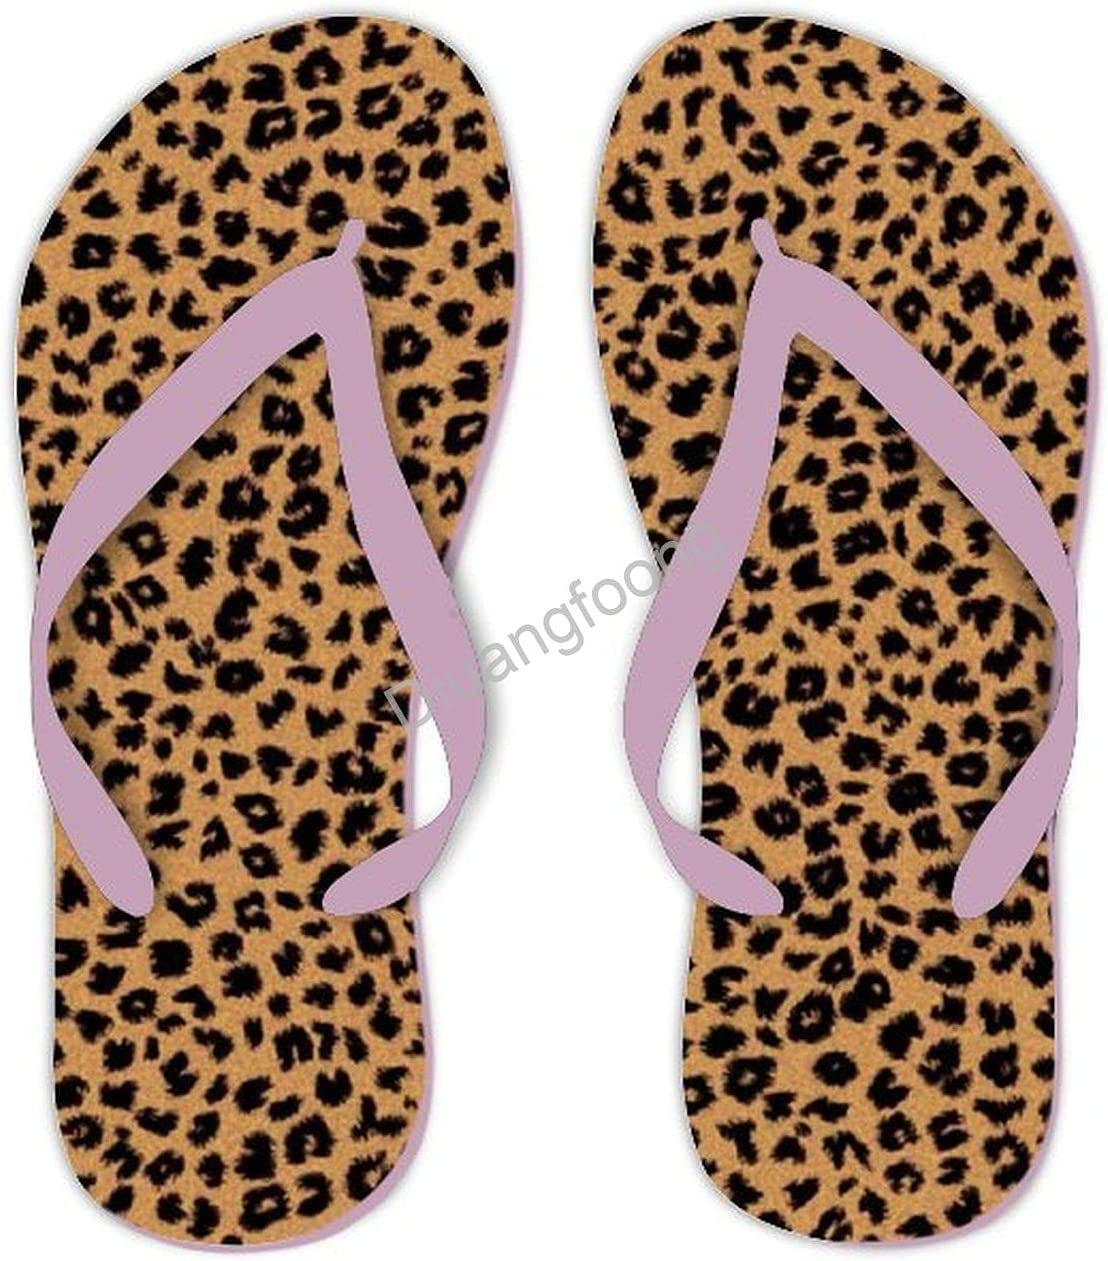 Leopard Flip Flops Beach Unisex Thong Sandals Pretty Sandal For Outdoor Travel Shipping Pink Style1